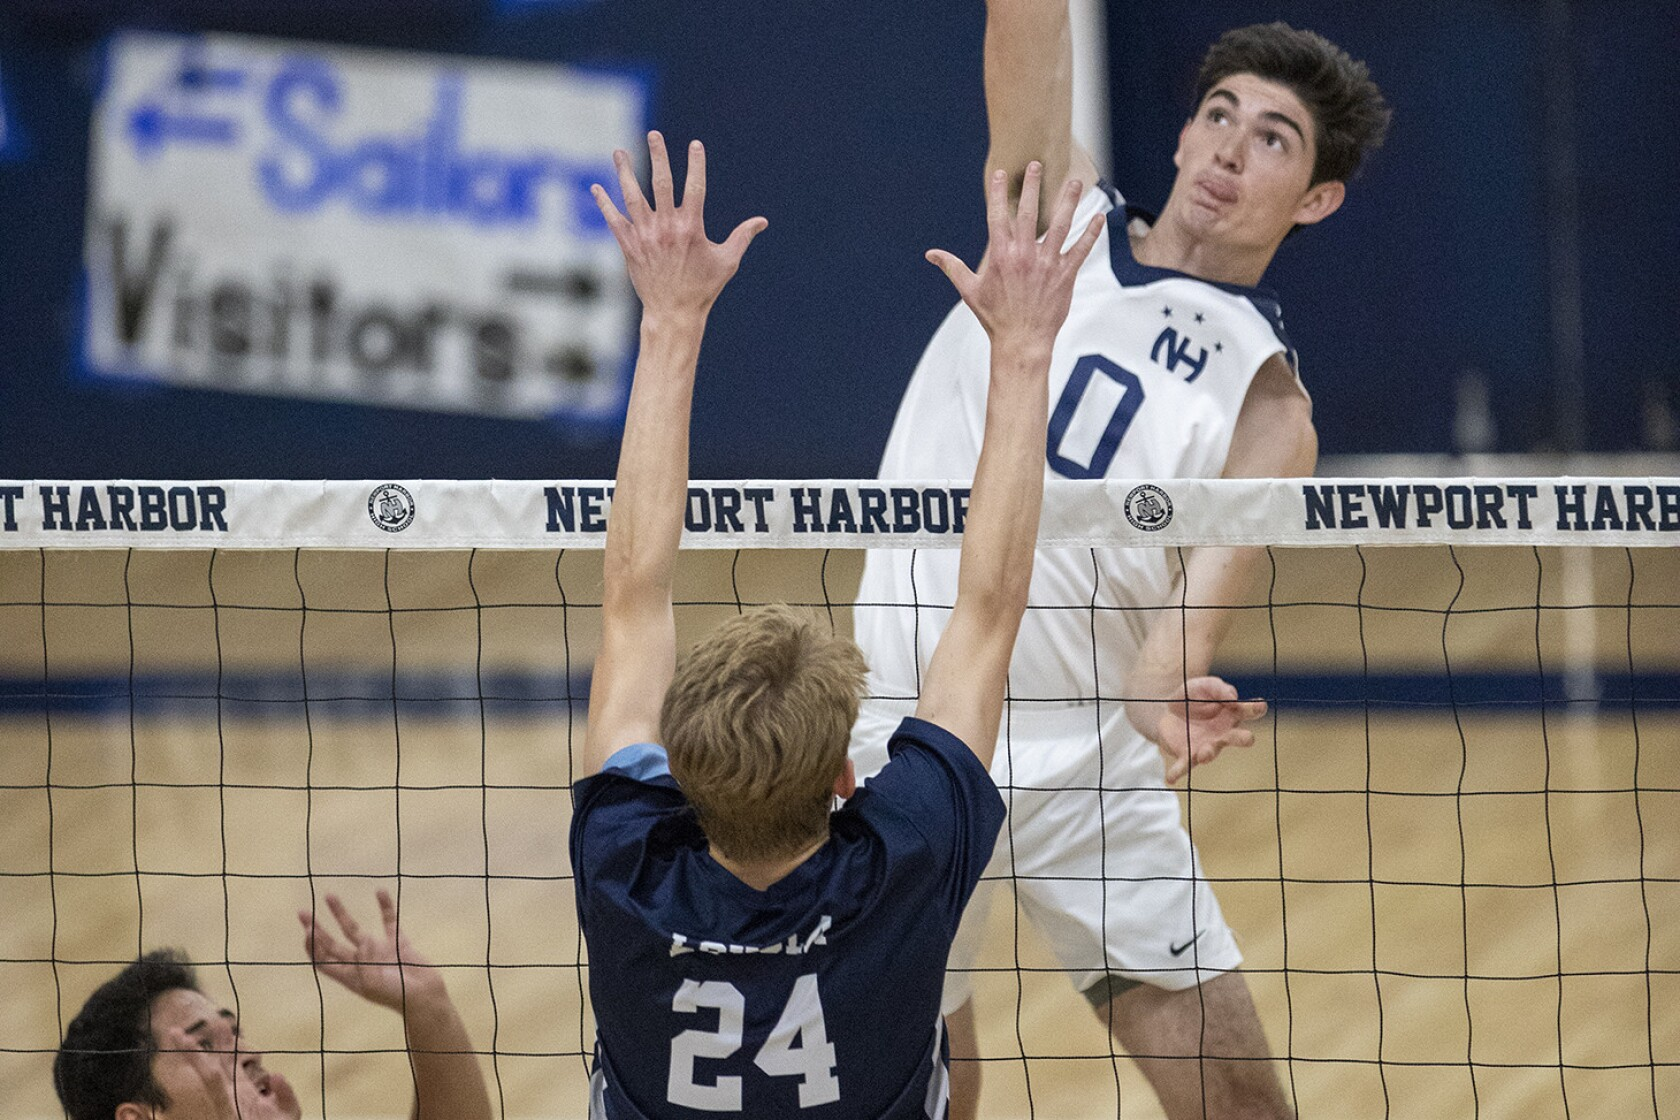 Newport Harbor boys volleyball rallies past Loyola to make second